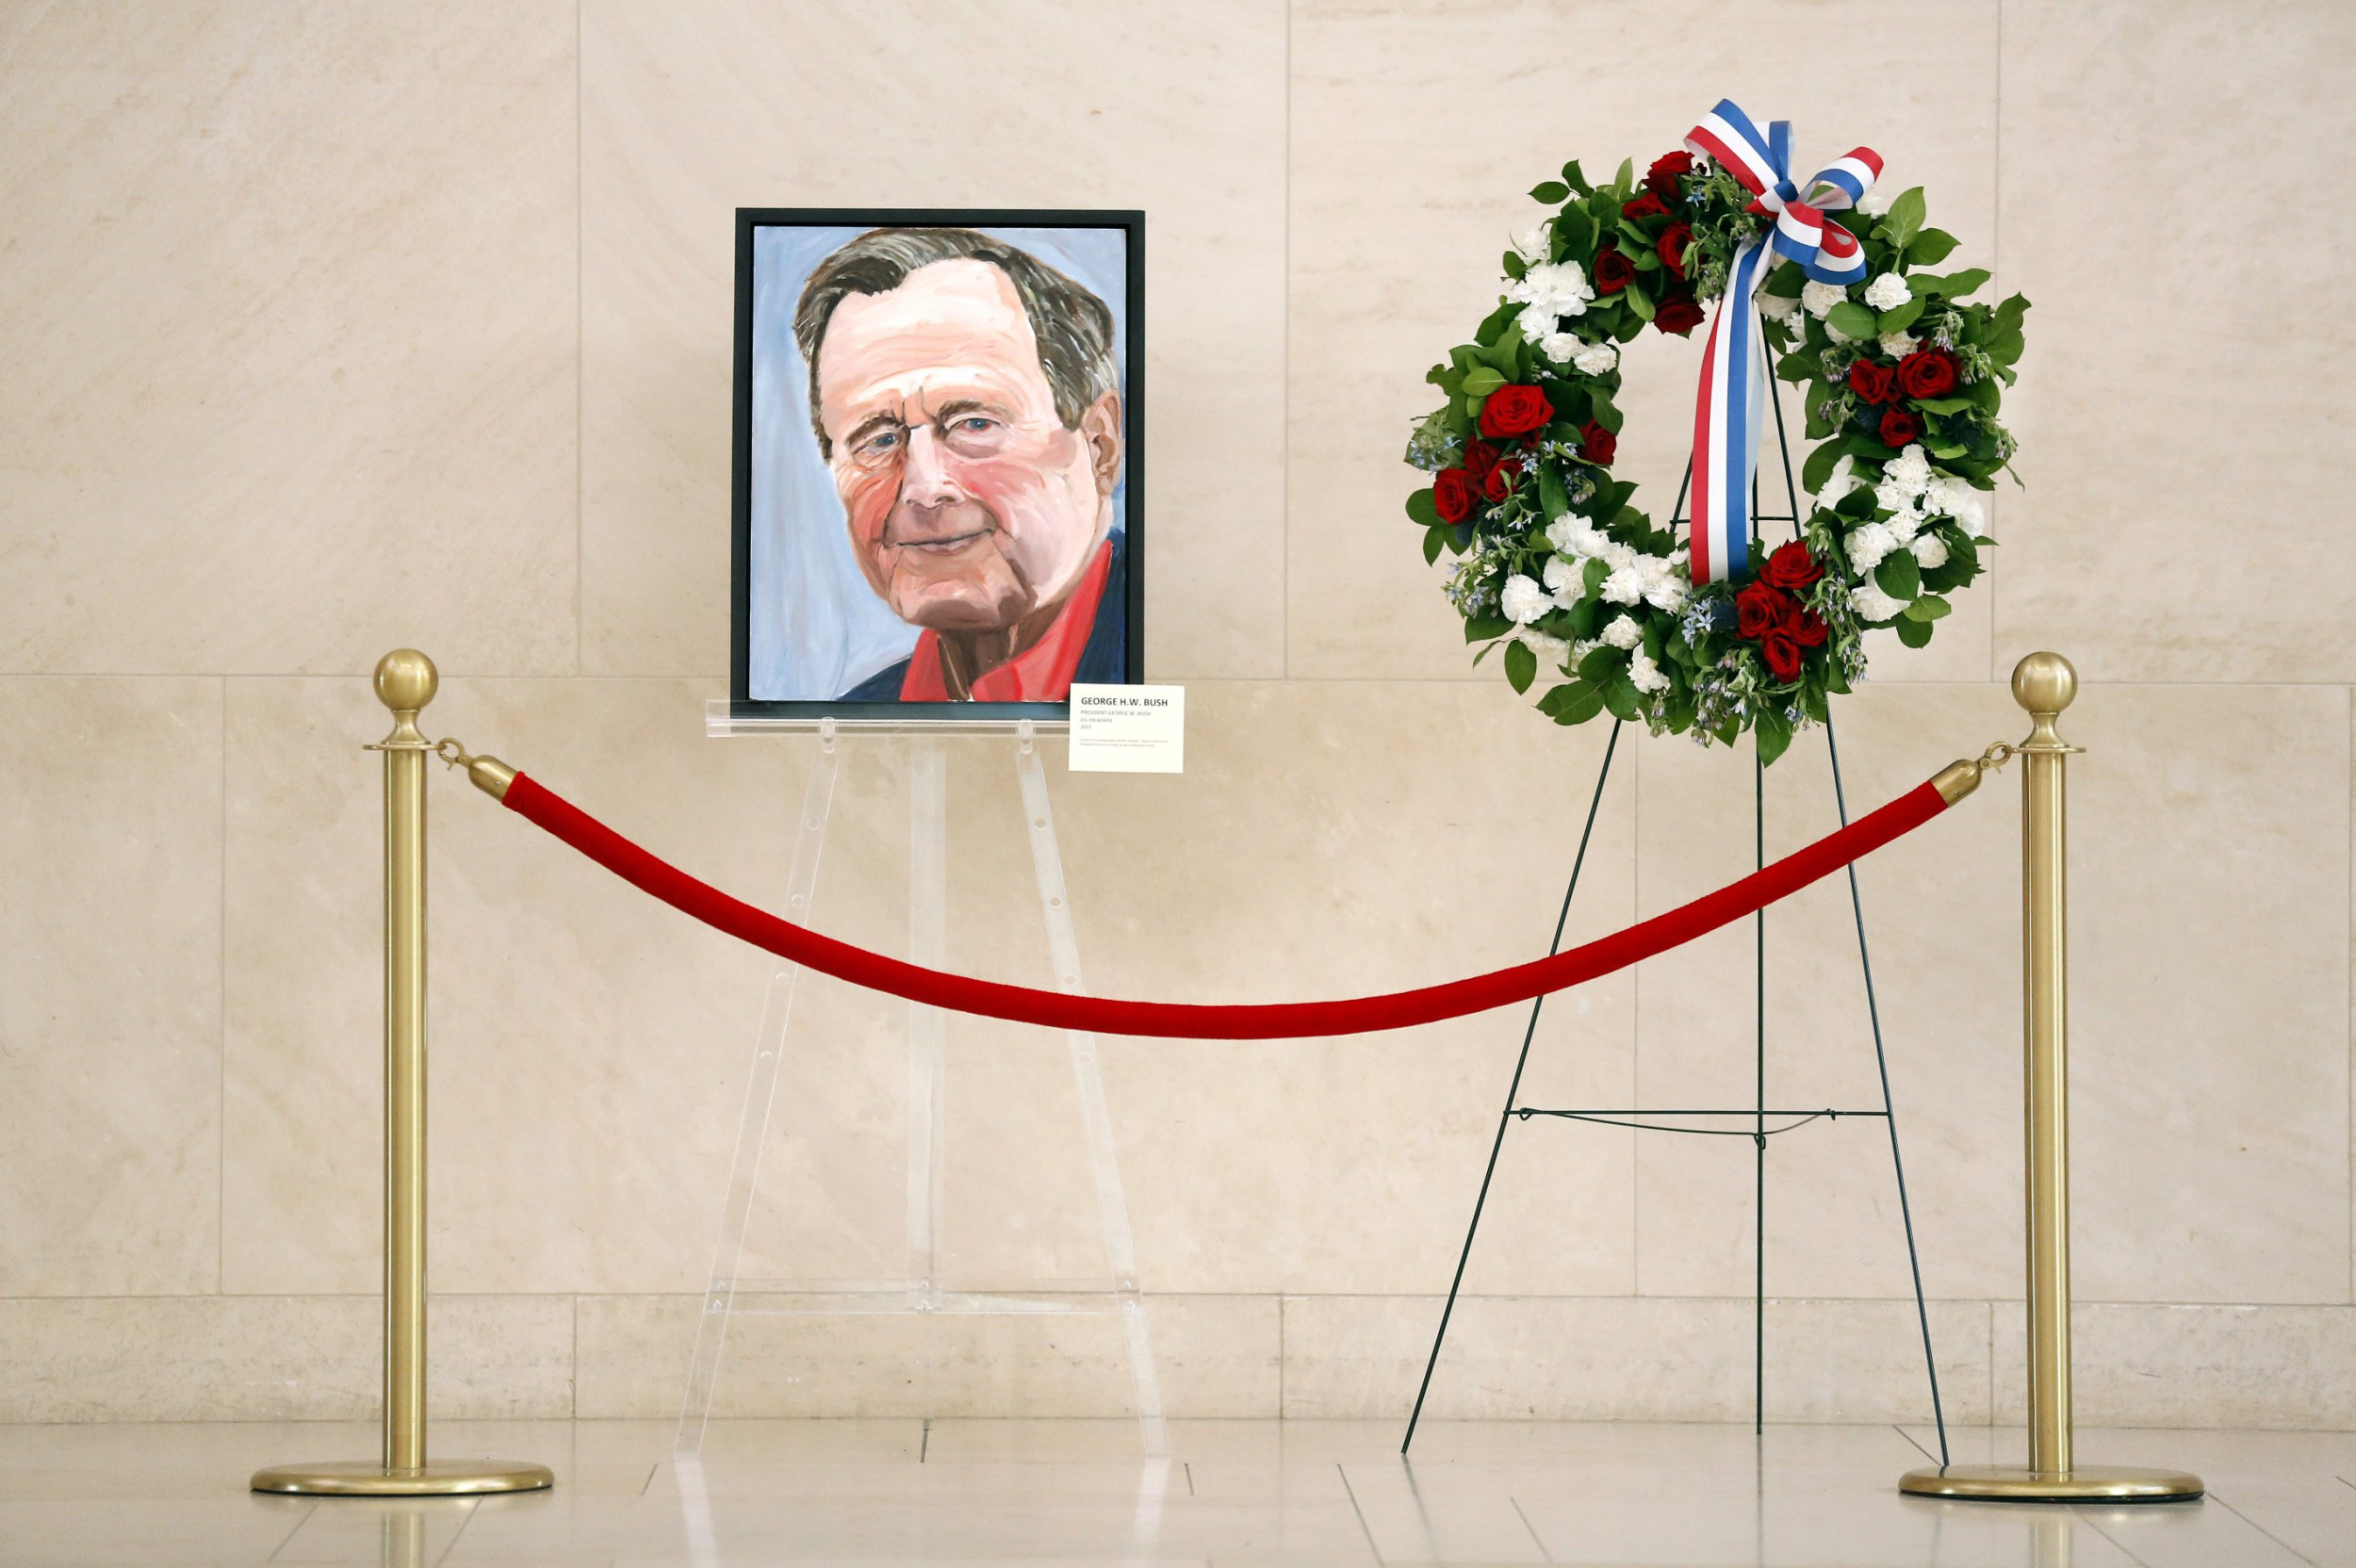 A painted portrait of the late 41st President George H.W. Bush -- painted by his son, Pres. George W. Bush -- and a memorial wreath grace the atrium area of his son's George W. Bush Presidential Library and Museum in University Park, Texas, Sunday, Dec. 2, 2018. President George H.W. Bush died last week in Maine. The painting was done by his son and former 43rd President George W. Bush. Bush will be laid to rest next to his wife Barbara at the George H.W. Bush Library Center in College Station, Texas this week. (Tom Fox/The Dallas Morning News via AP)